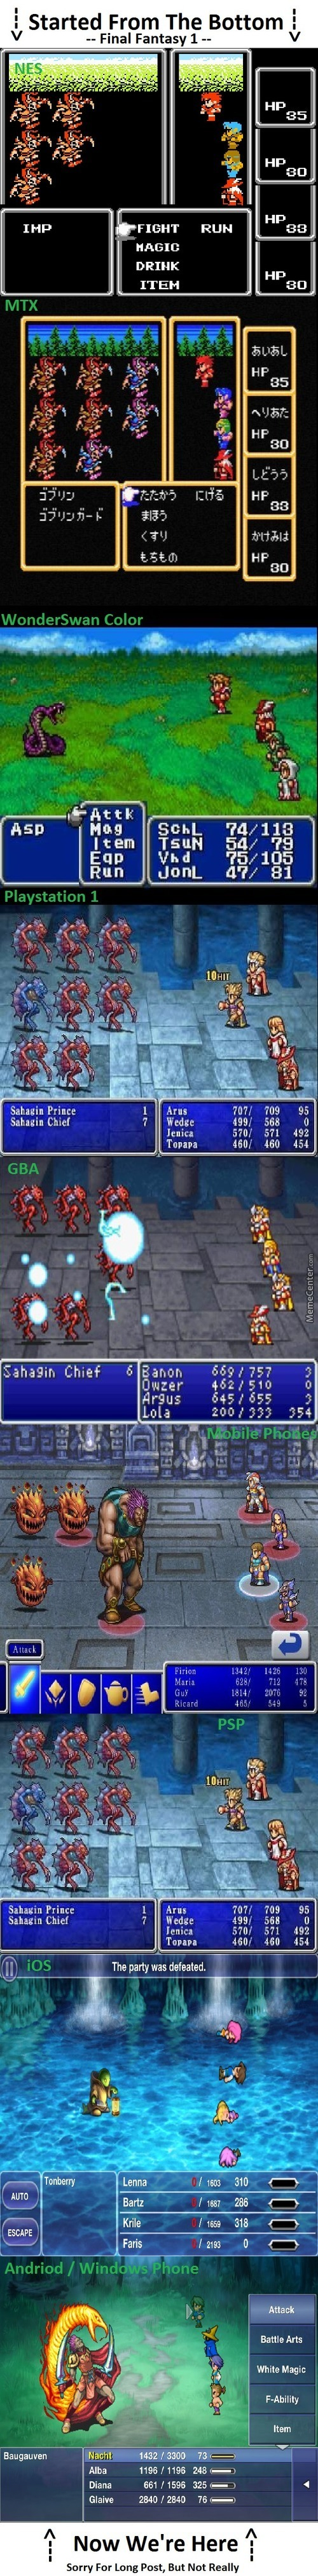 The Life Of Final Fantasy 1